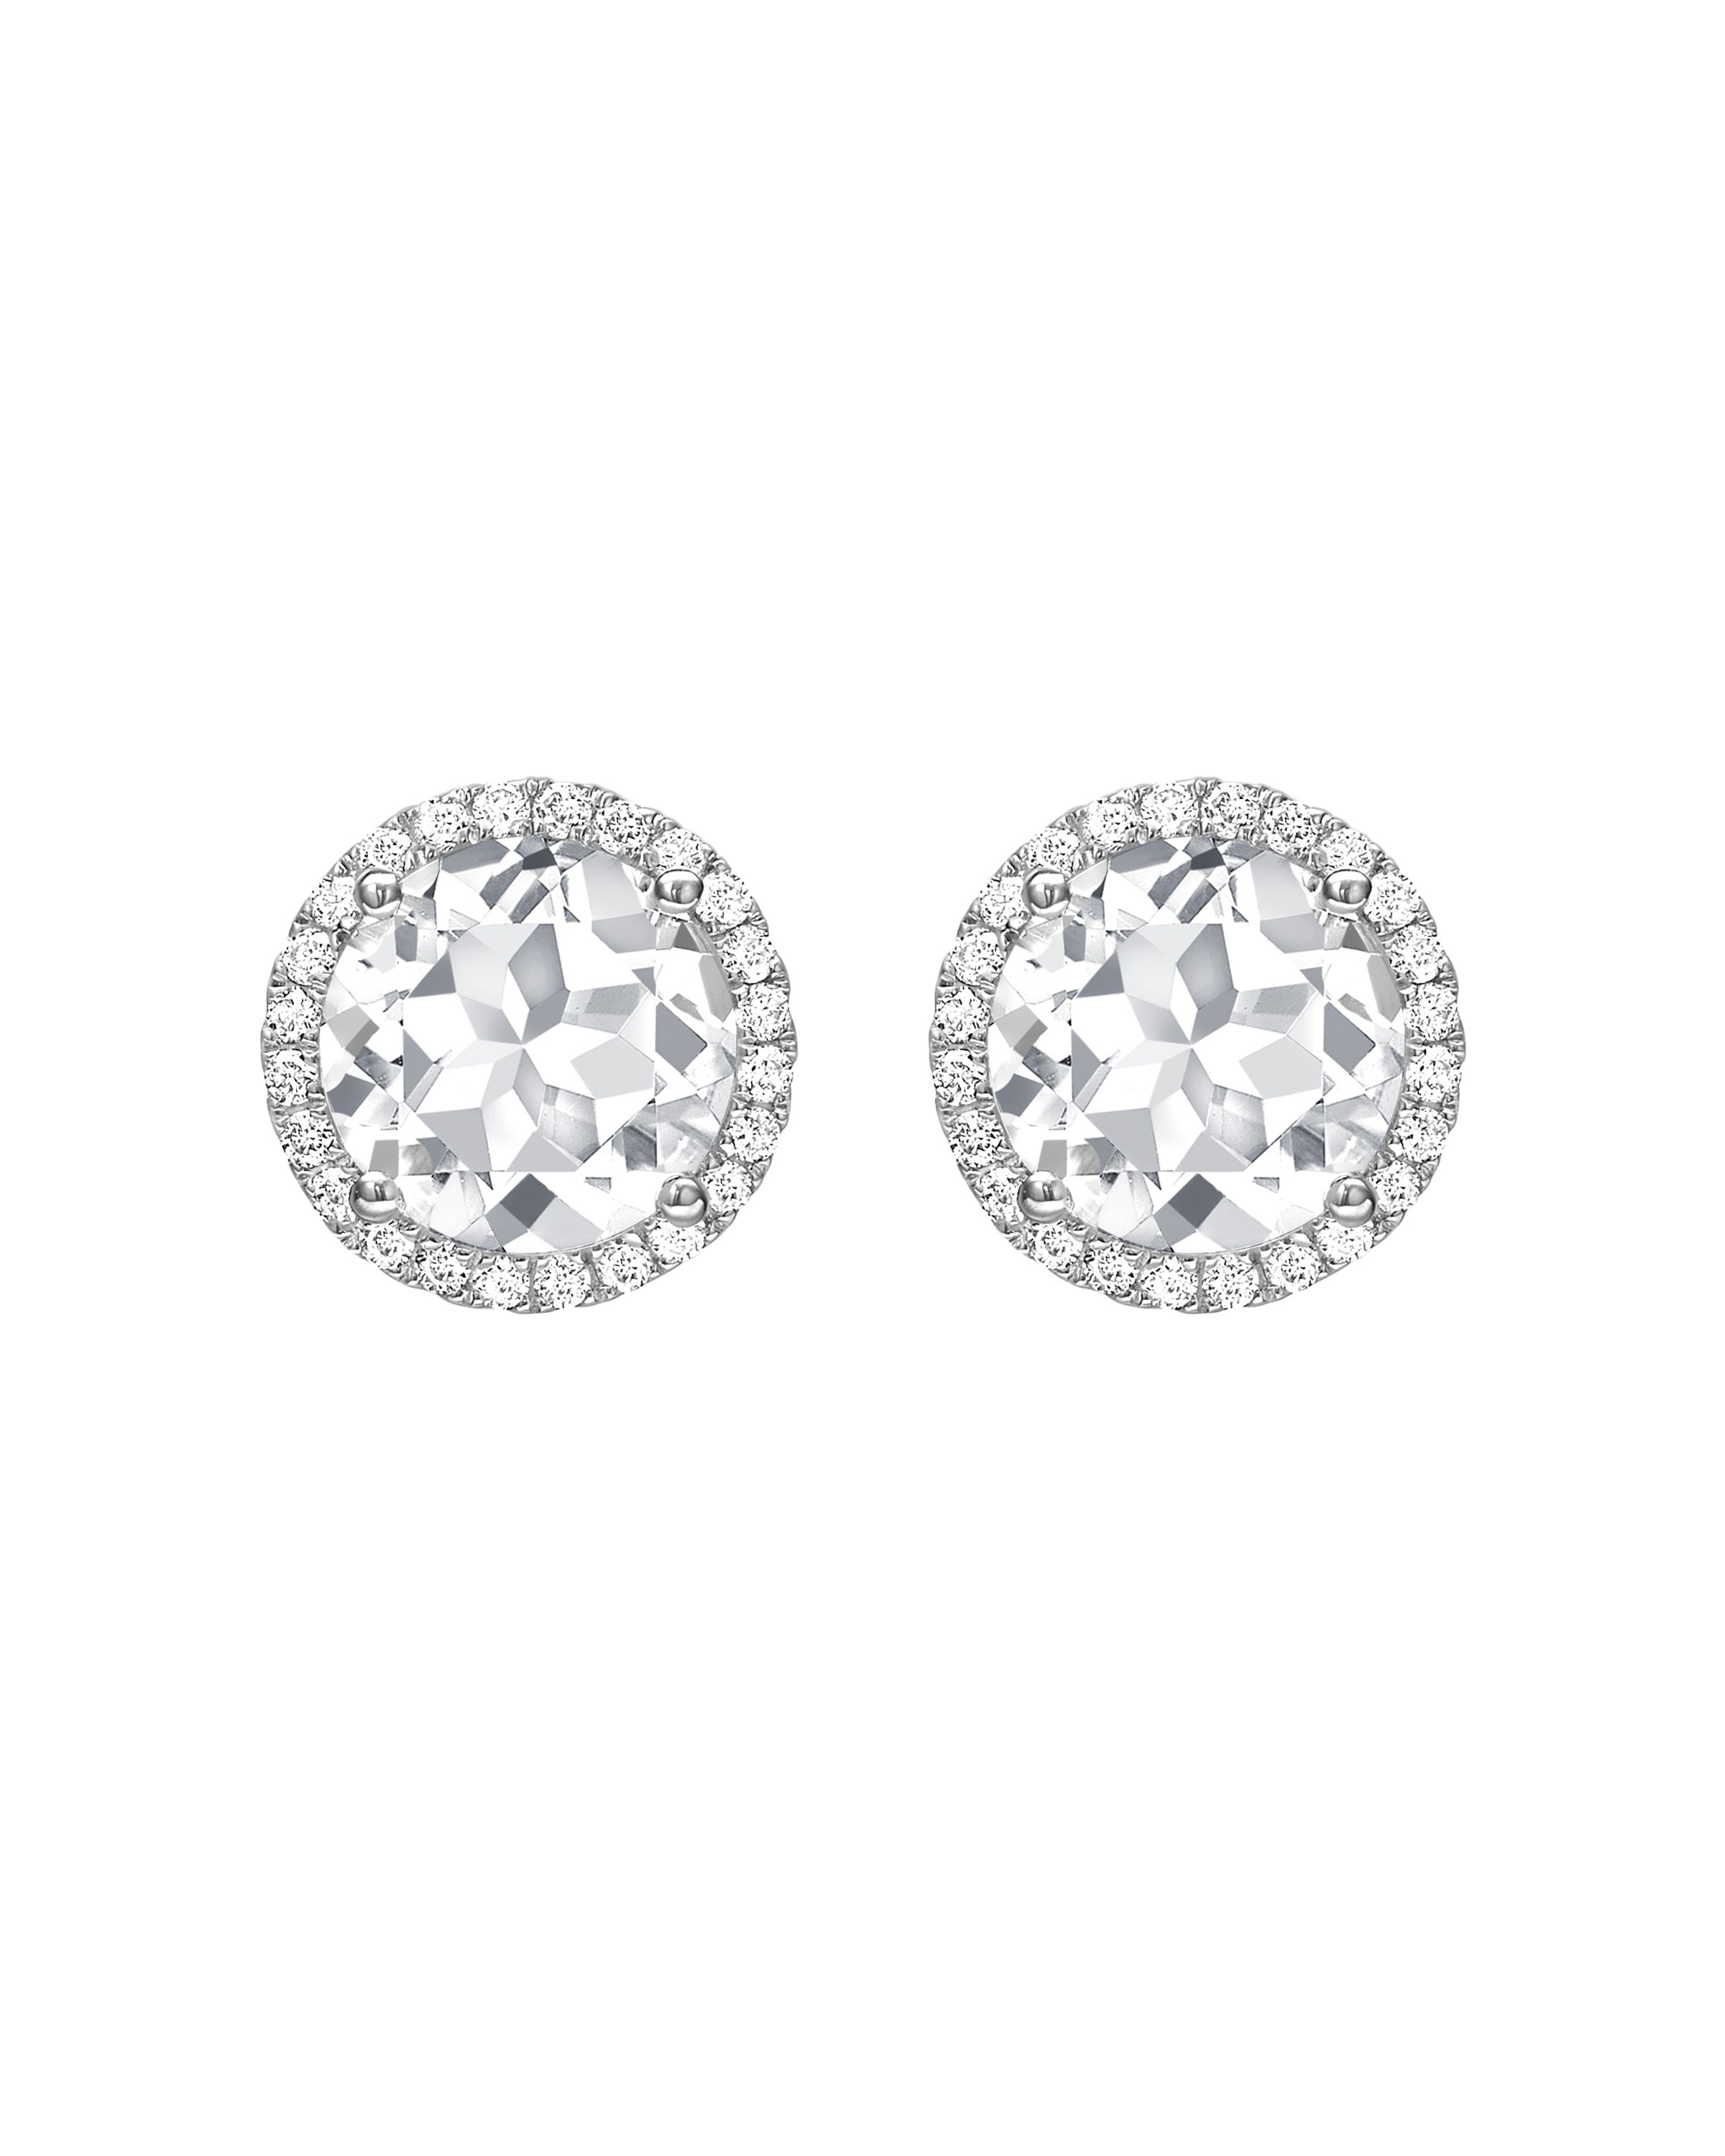 a90201a76 Grace White Topaz and Diamond Stud Earrings in White Gold | Jewelry ...